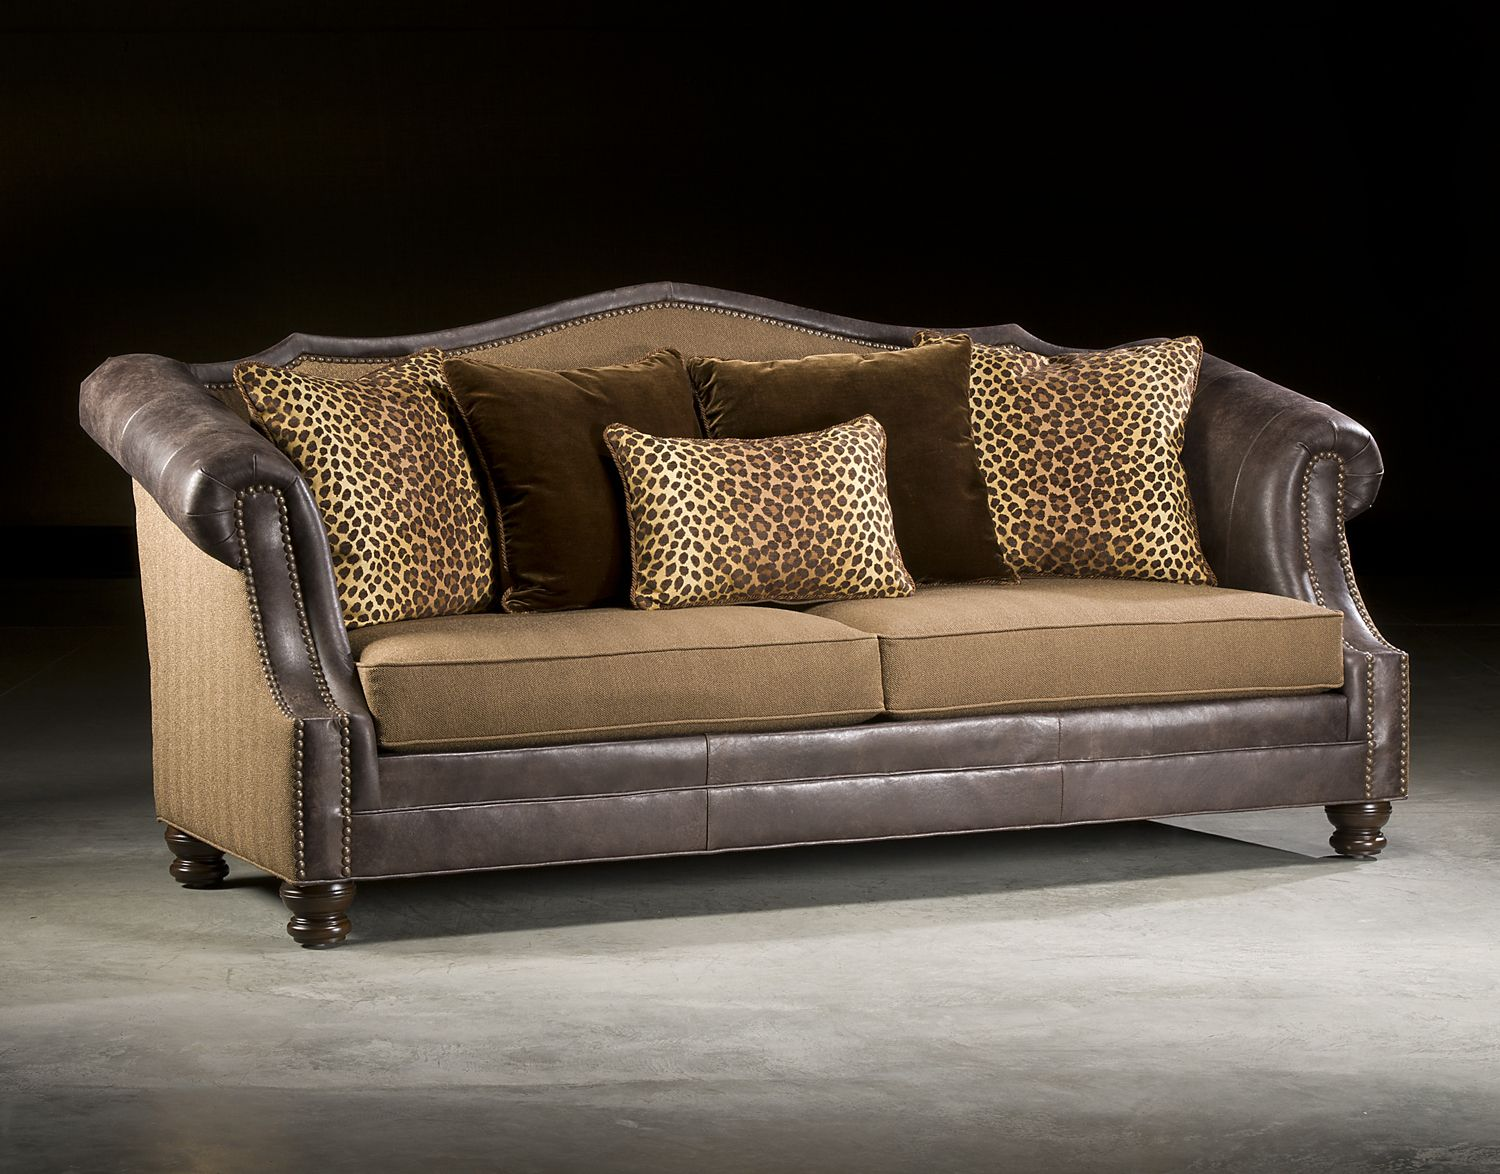 Google Image Result For Http Blog Coloradostyle Com Wp Content Uploads 2012 01 386 8 2241 L3823 Jpg Sofa Leather Reclining Sofa Fabric Sofa